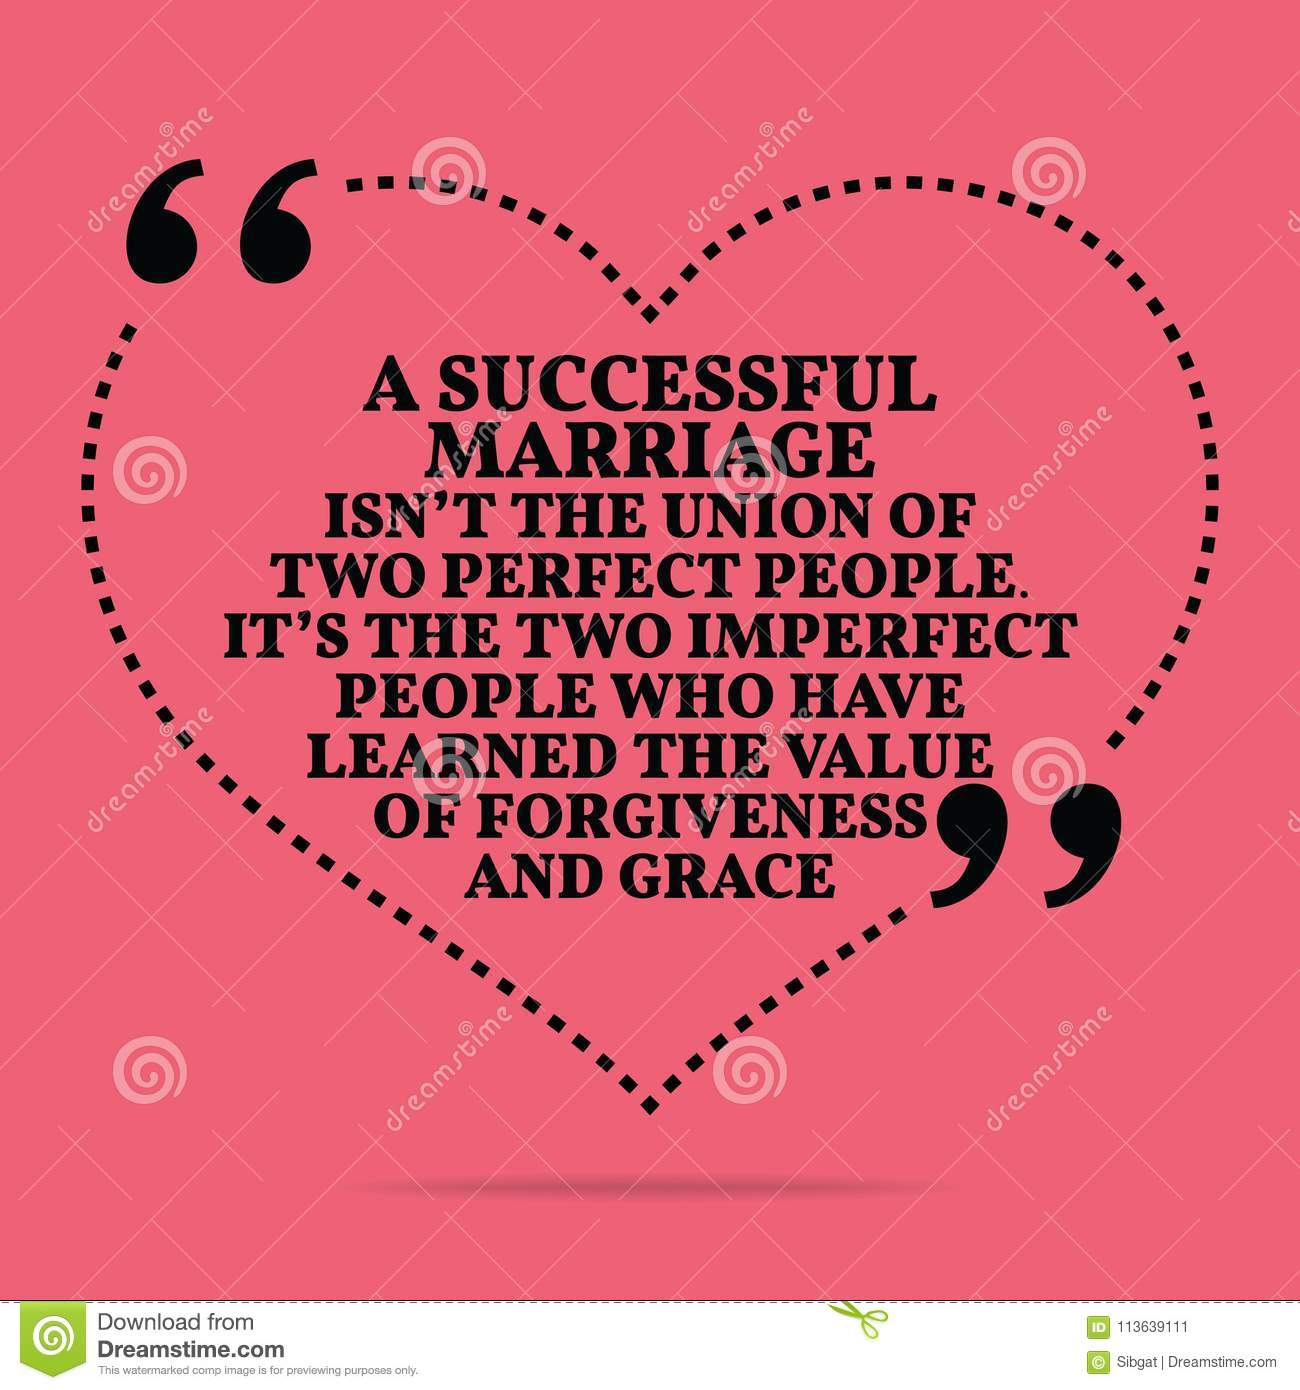 Inspirational Love Marriage Quote. A Successful Marriage